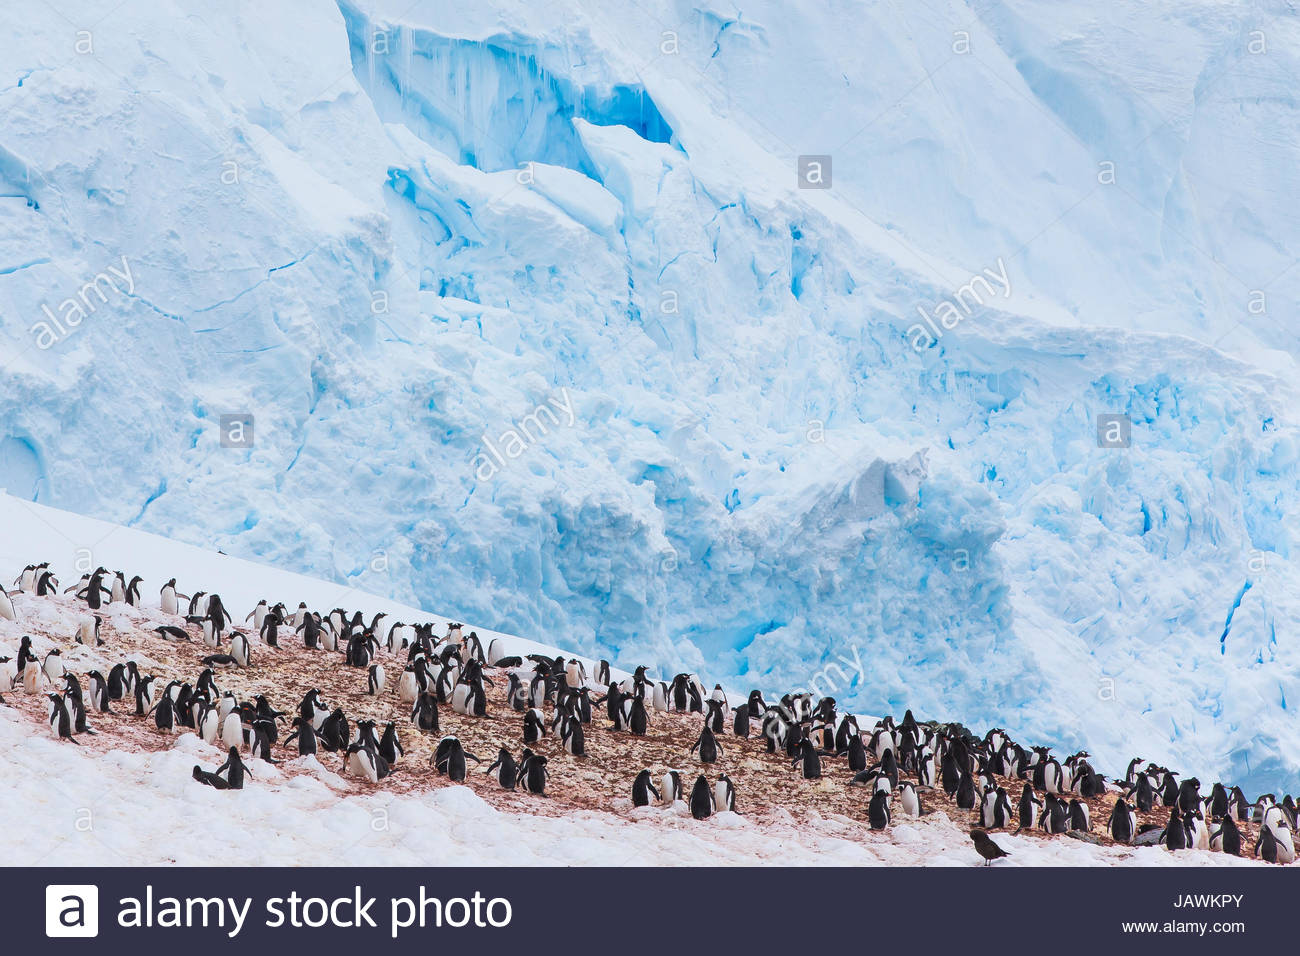 Colony of penguins in Antarctica. - Stock Image